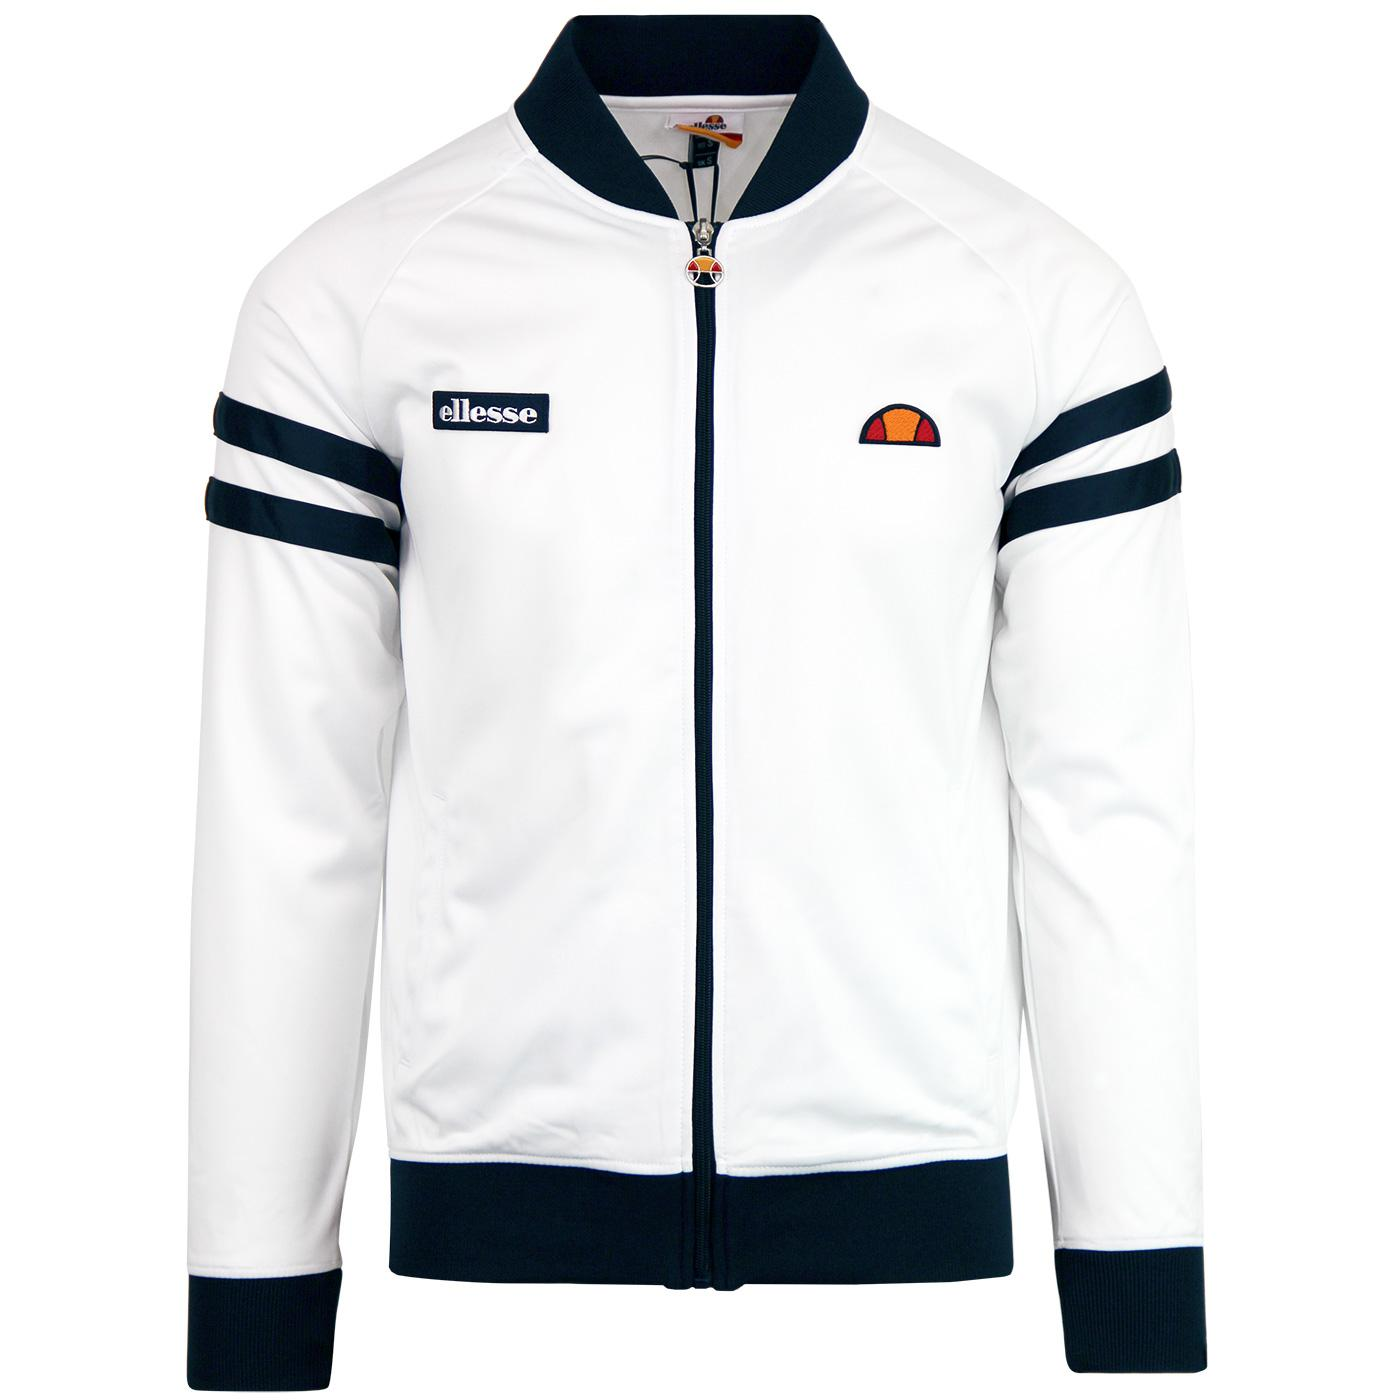 Romeo ELLESSE Men's Retro 70s Tricot Track Top W